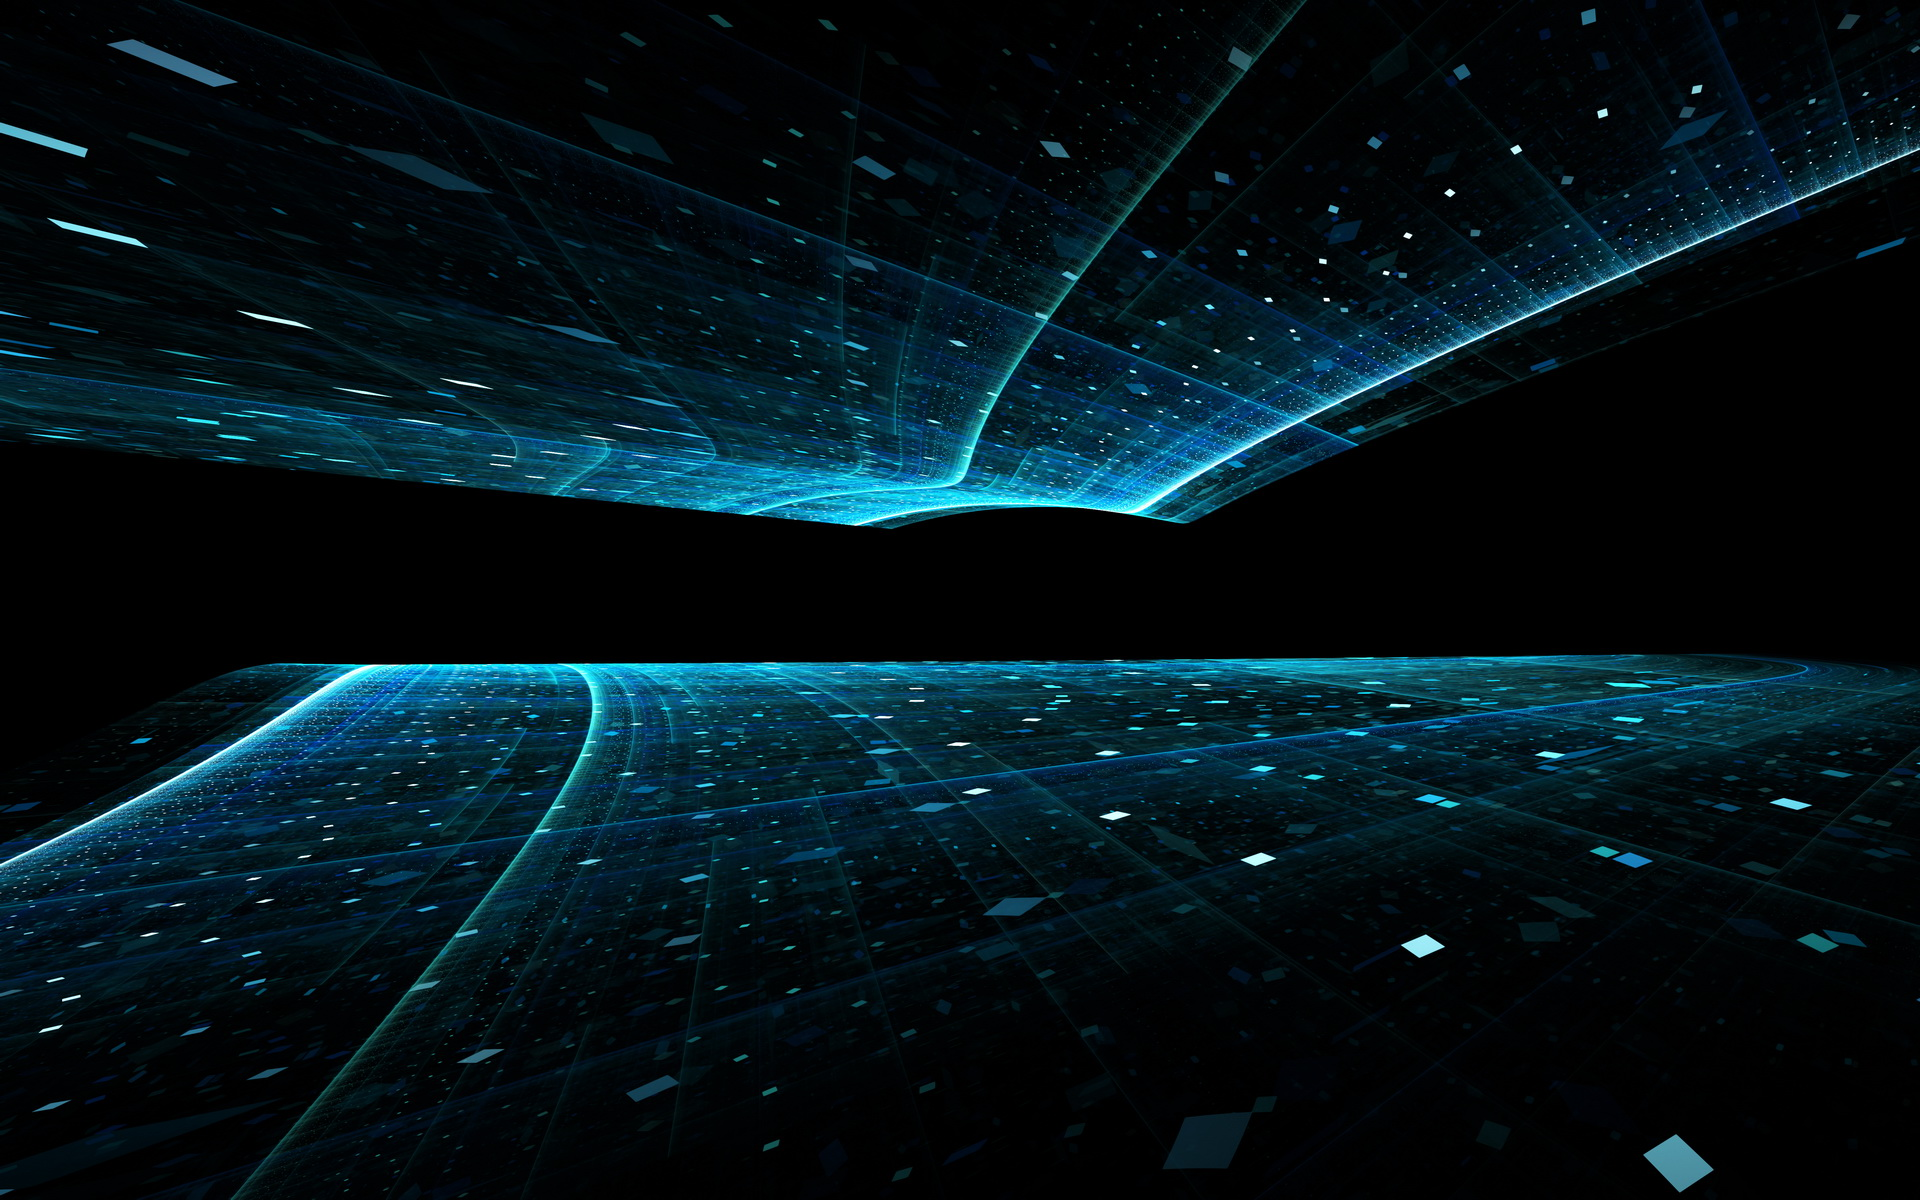 futuristic-widescreen-wallpapers